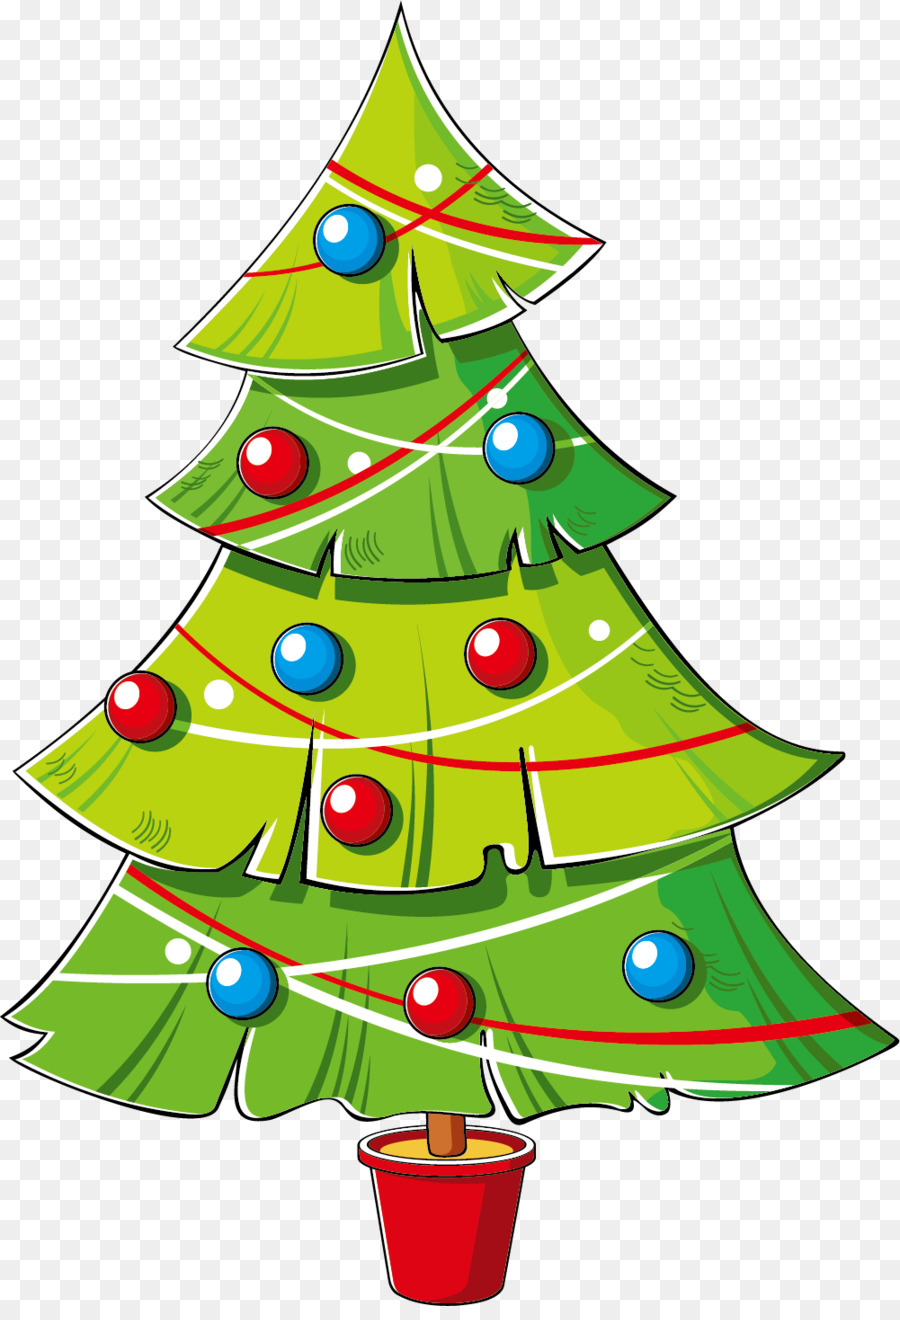 Christmas tree cartoon. Animation png download free